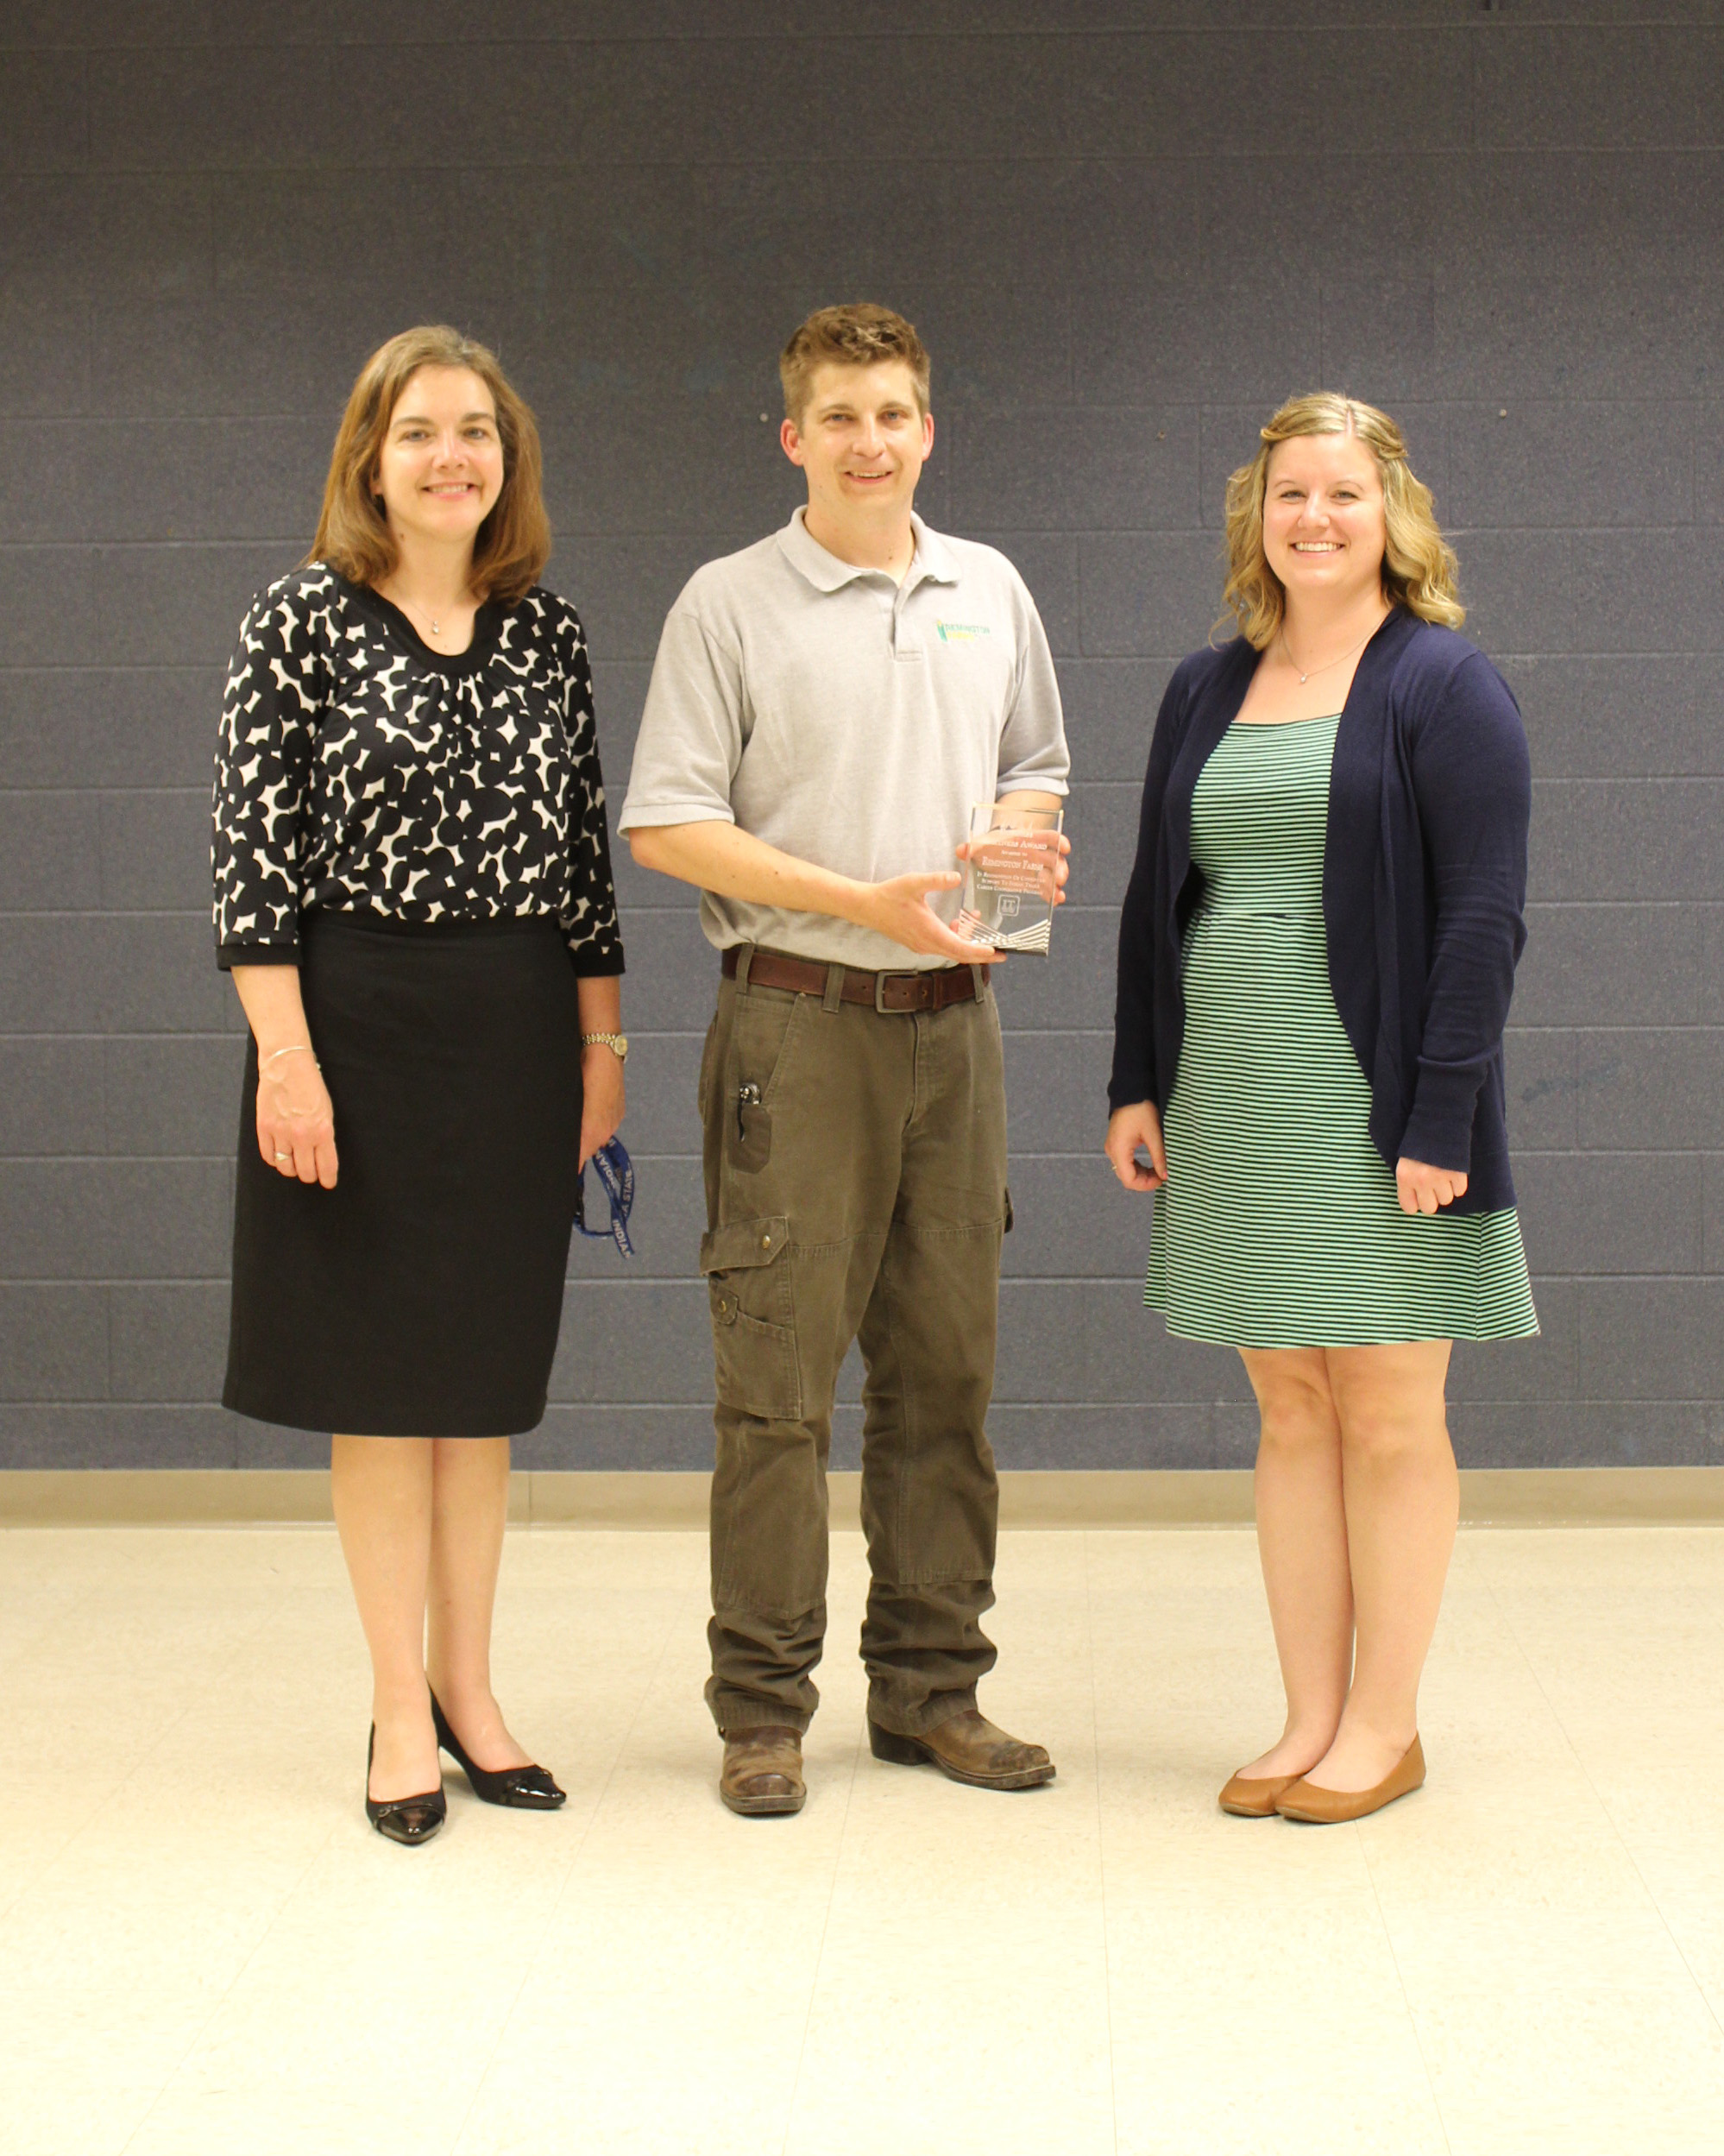 Cathy Rowe, Quinten Overbeck - Remington Farms Business Partner, Ashley Steuer